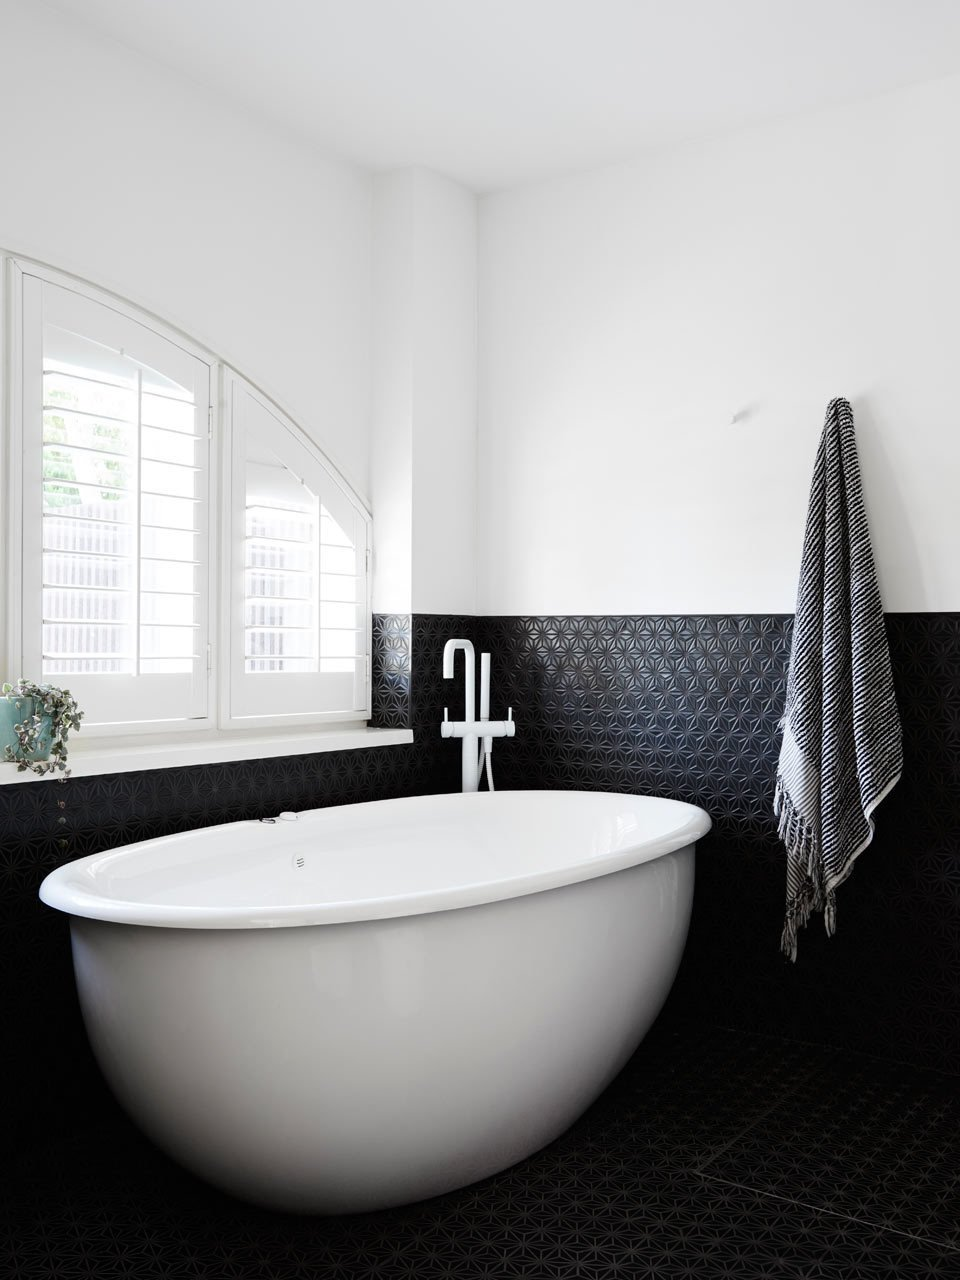 #designmilk #northbourne #architecture #melbourne #modern Photo by Eve Wilson  The new master bathroom is outfitted with charcoal Japanese mosaic tiles, which contrast the white paint and fixtures.    Tubs from A Melbourne Home is Renovated for a Growing Family